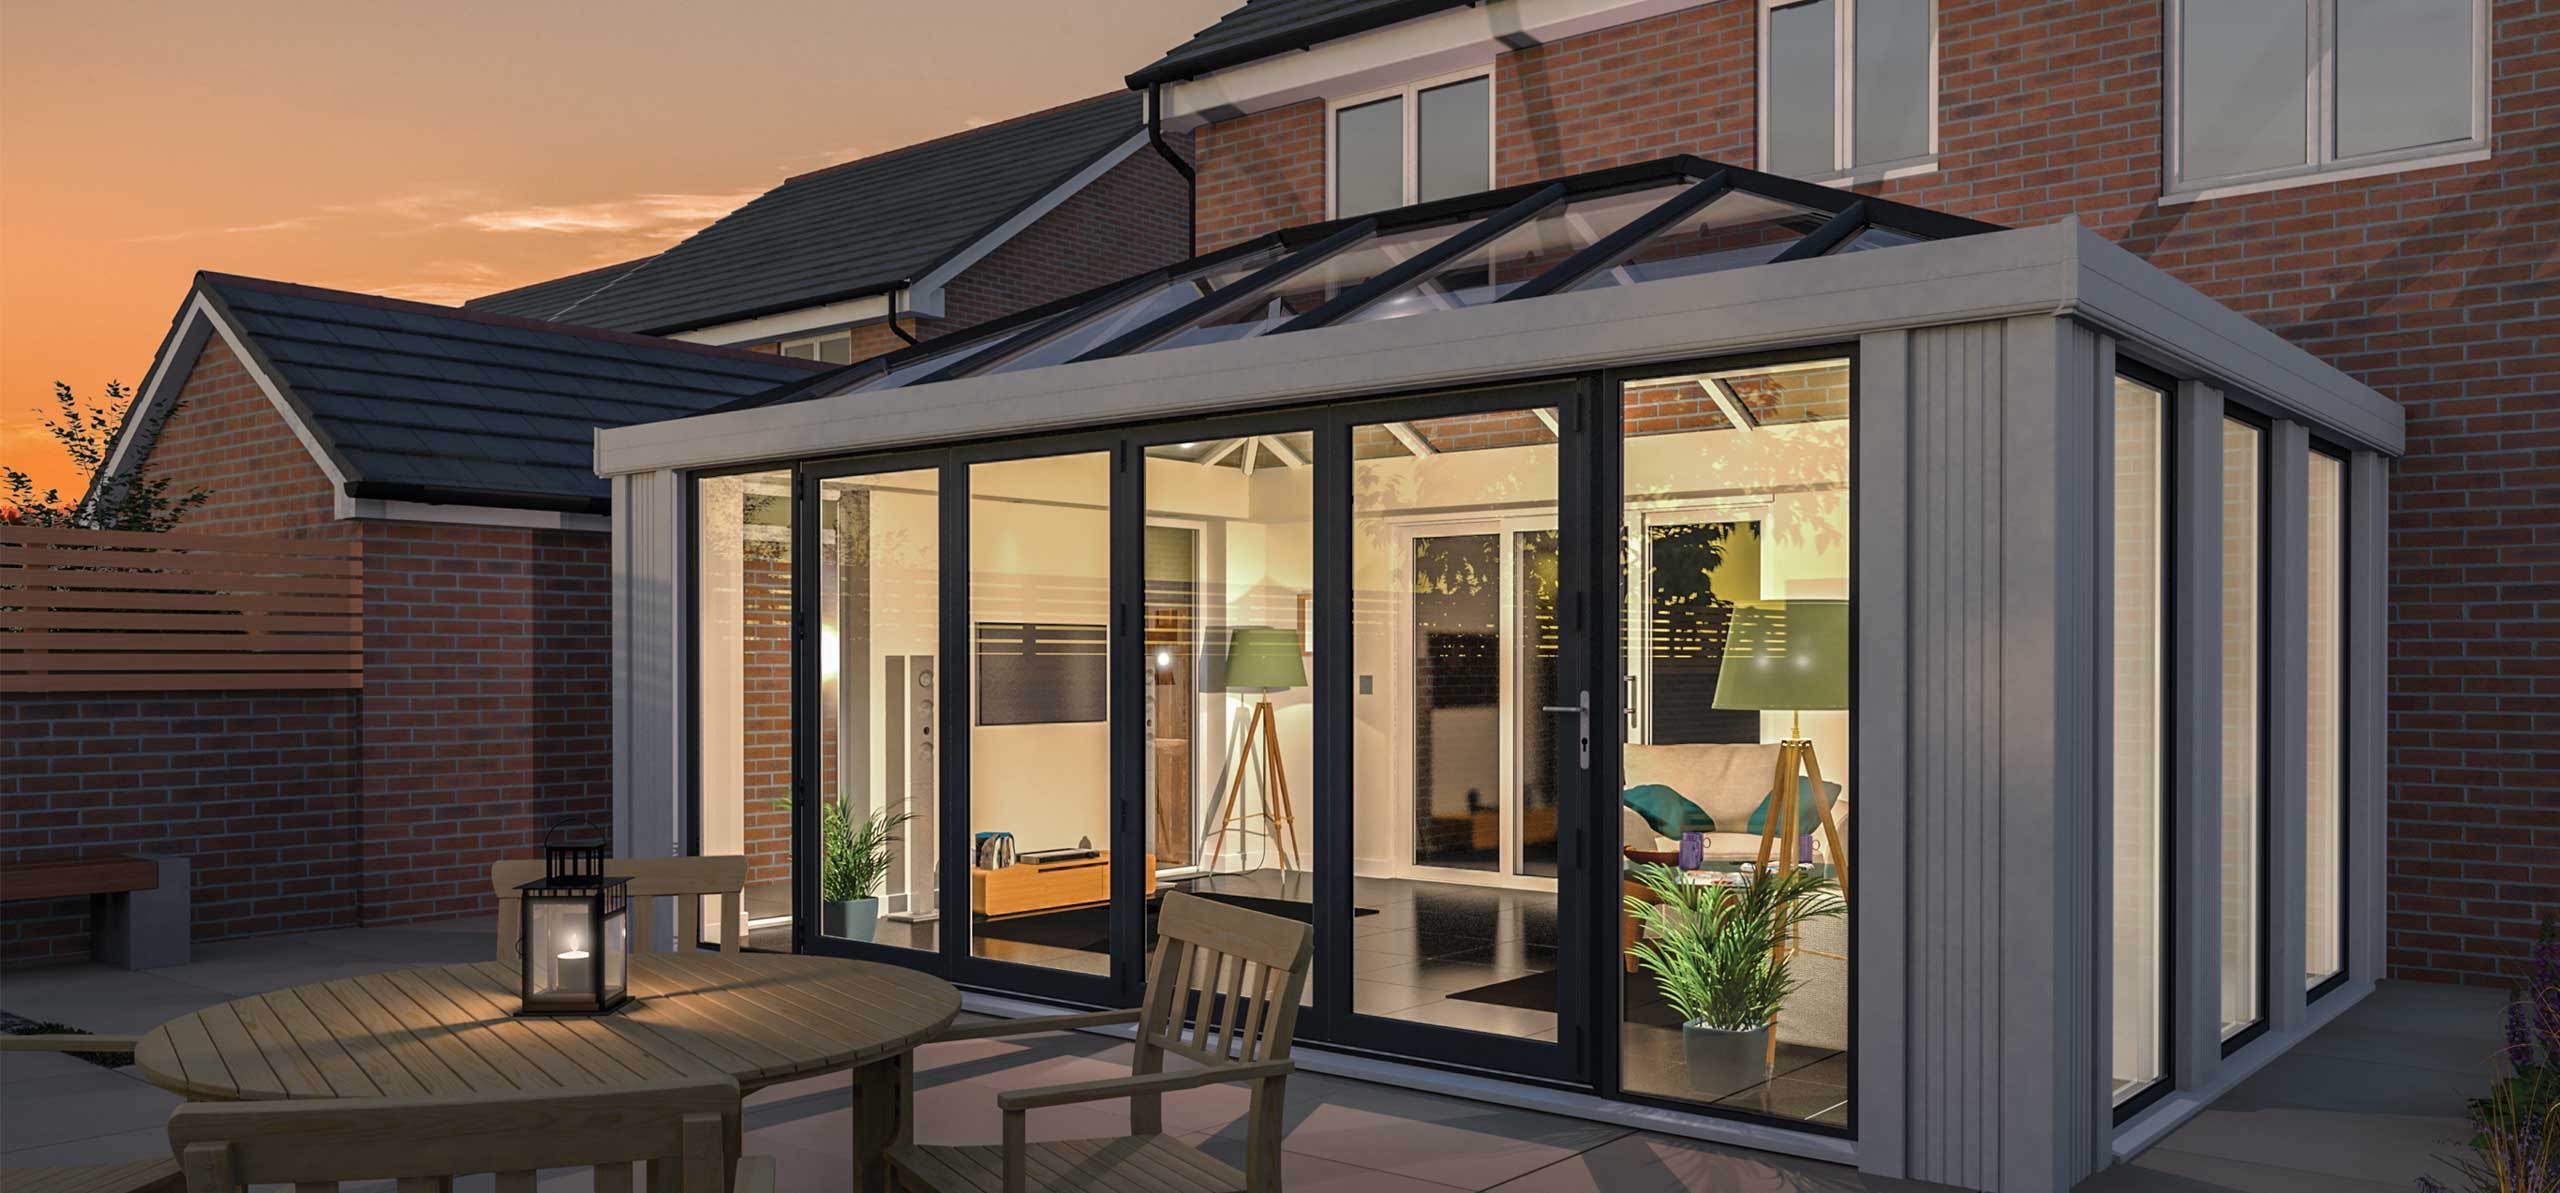 Conservatories, Orangeries, House Extensions, Roofs ...